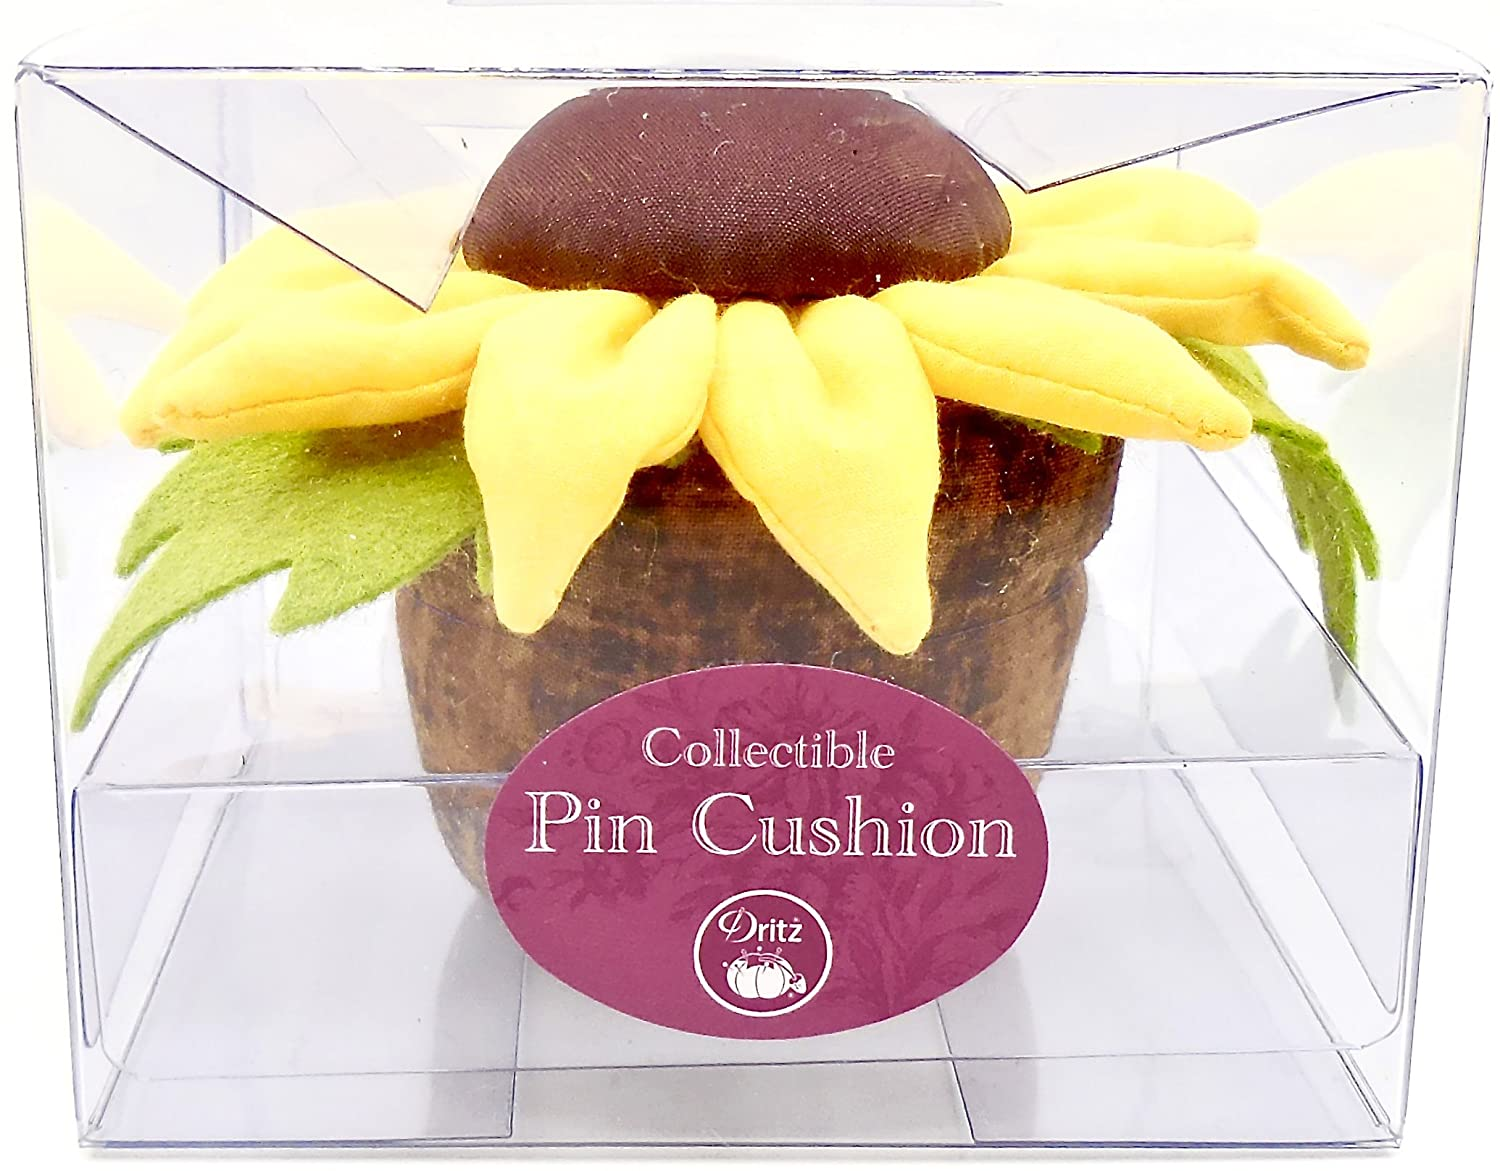 Jo-ann's Dritz Pincushion, Collectible Cushions (Yellow Sunflower in Pot) Prym USA